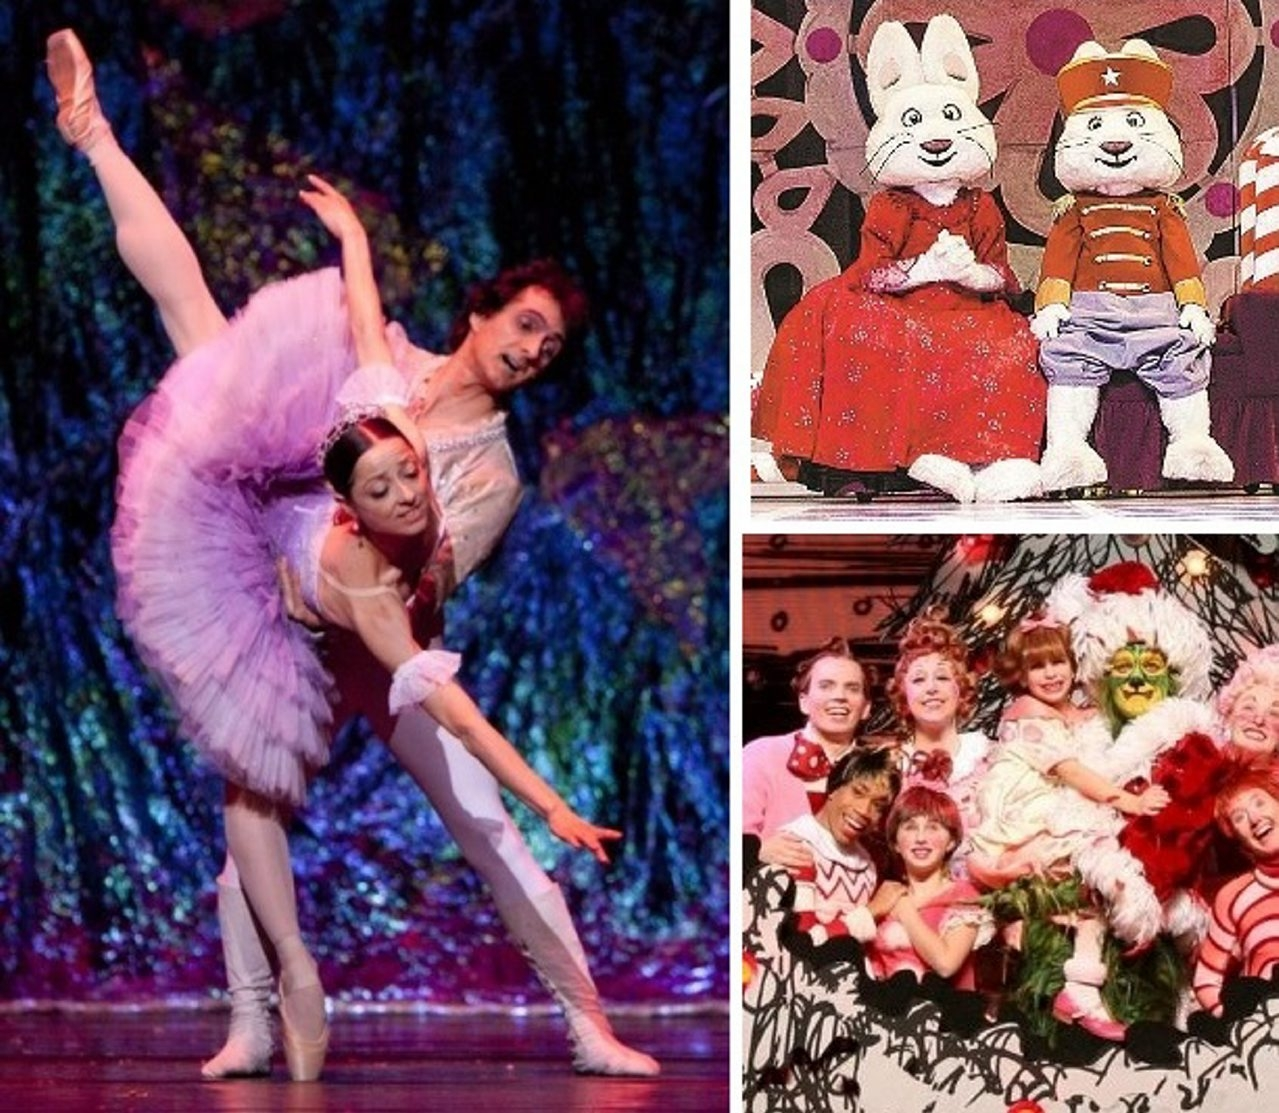 Variations on the Nutcracker include the Neglia Ballet and the BPO at Shea's and a Max and Ruby Nutcracker at the Riviera Theatre, both Saturday. The Grinch musical will be on stage in Shea's Dec. 17 to 22.